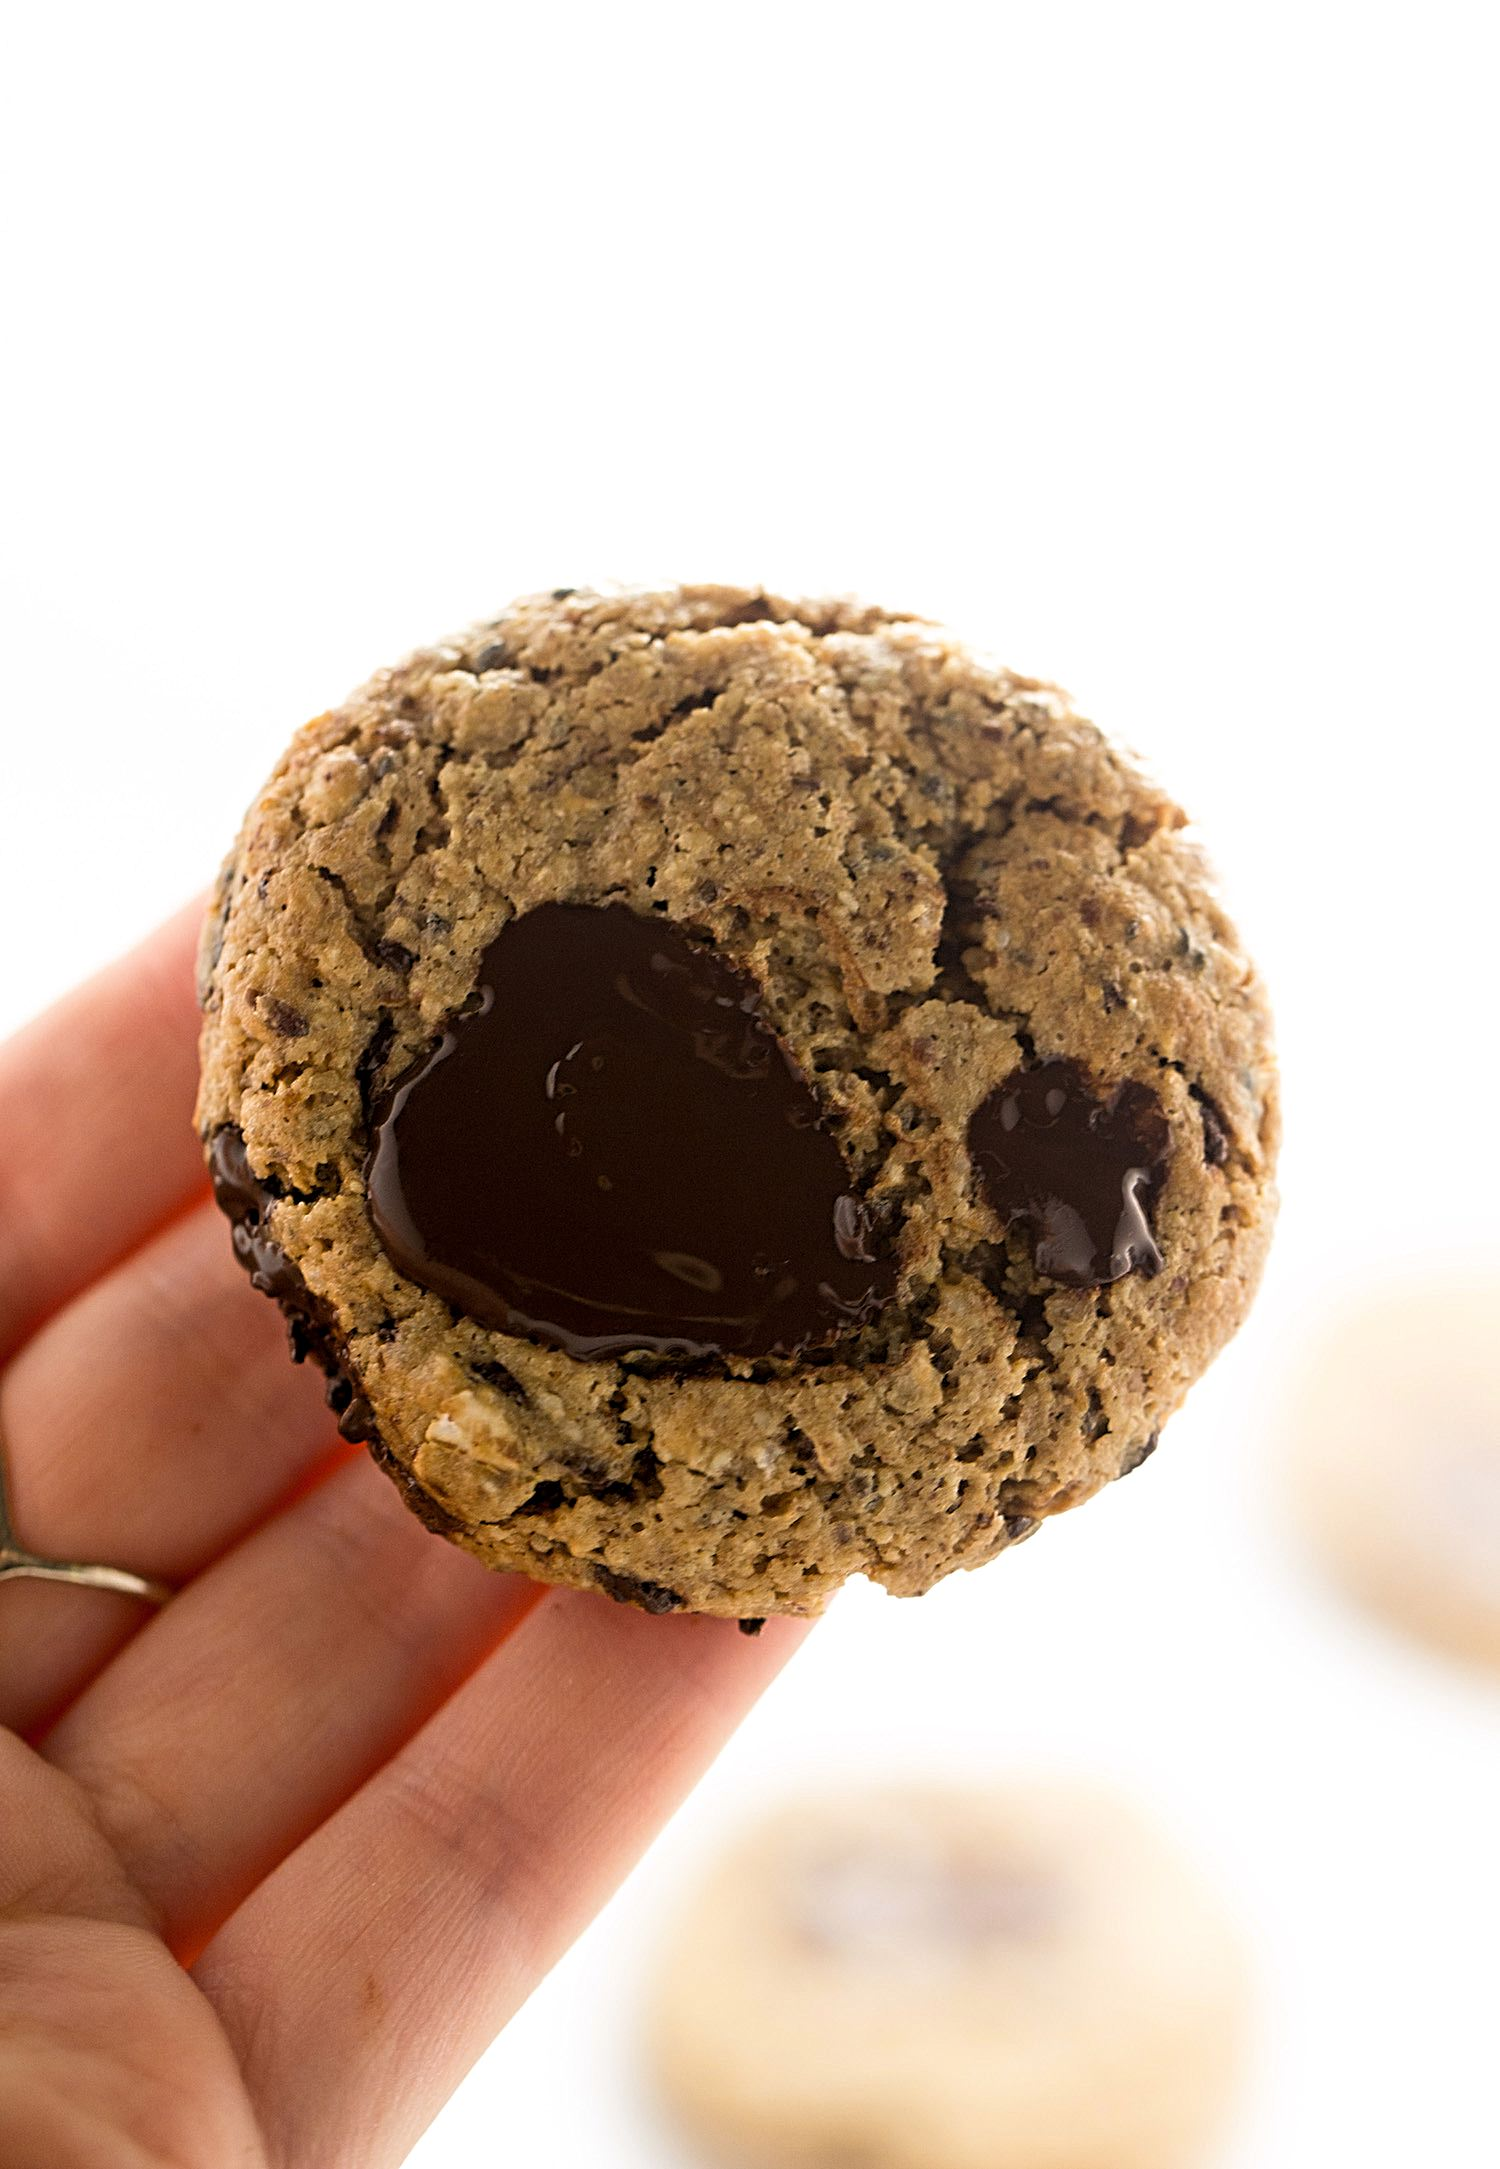 Wholesome Breakfast Cookies: soft, rich, delicious, nutrient-dense cookies made with nuts, oats, seeds, and chocolate chunks. So good! | Trufflesandtrends.com